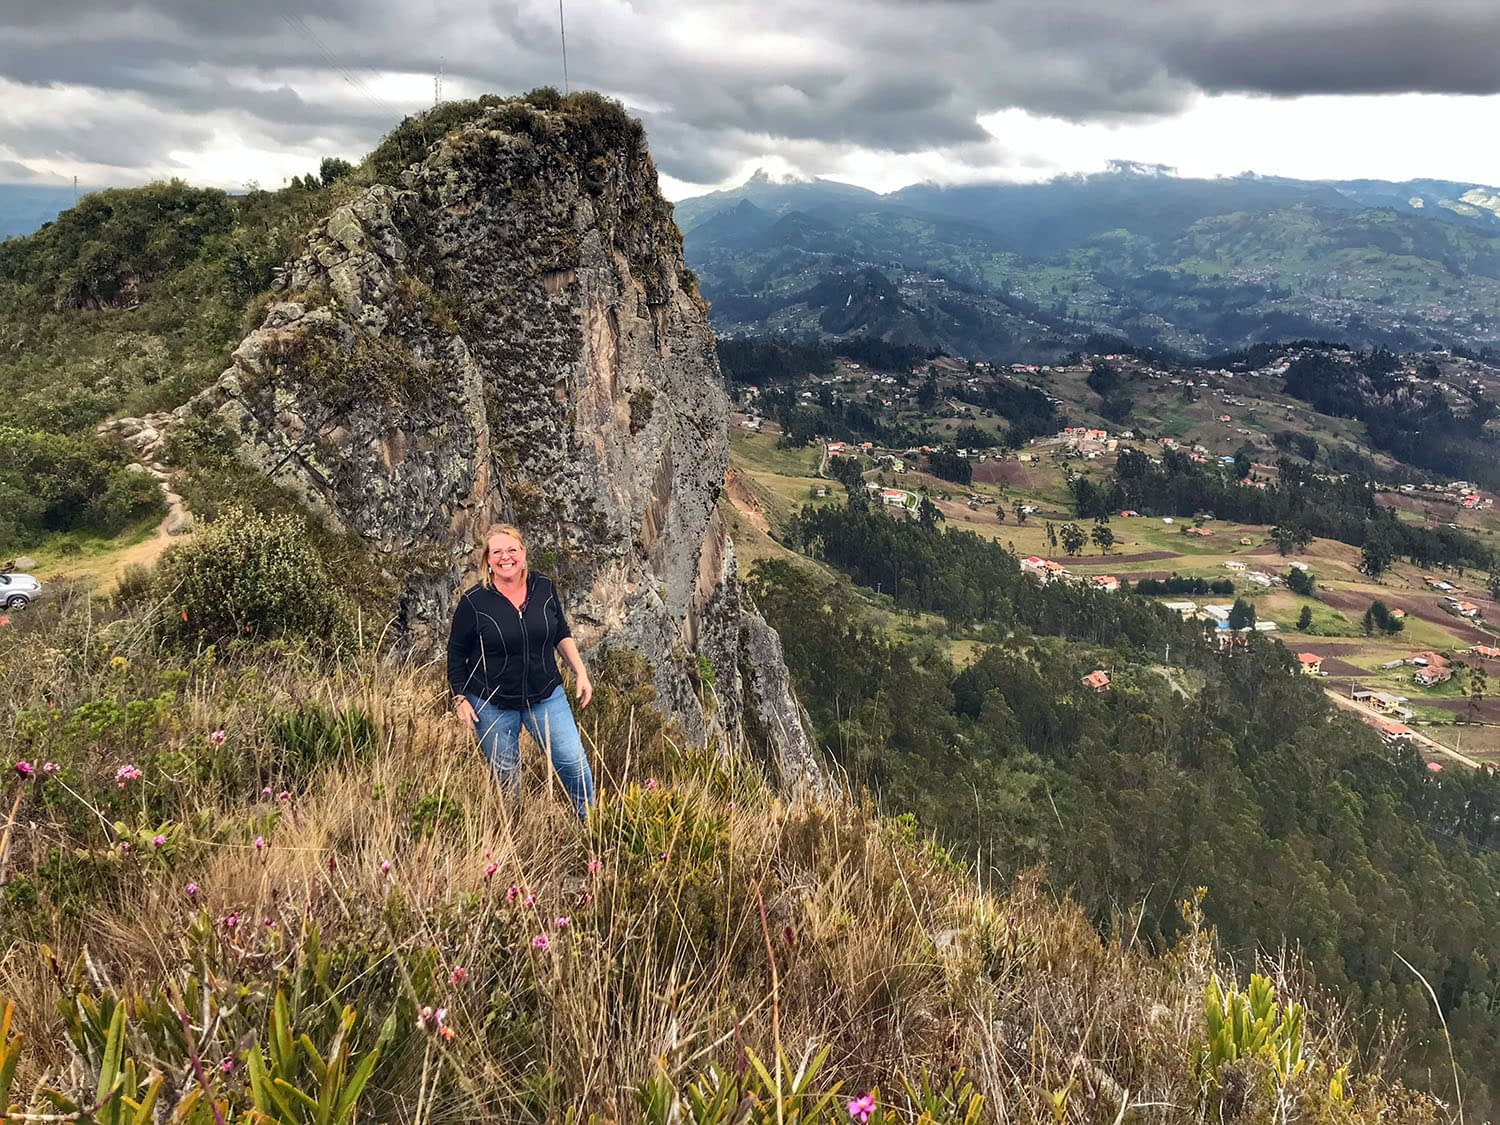 Me standing on top of a mountain in ecuador